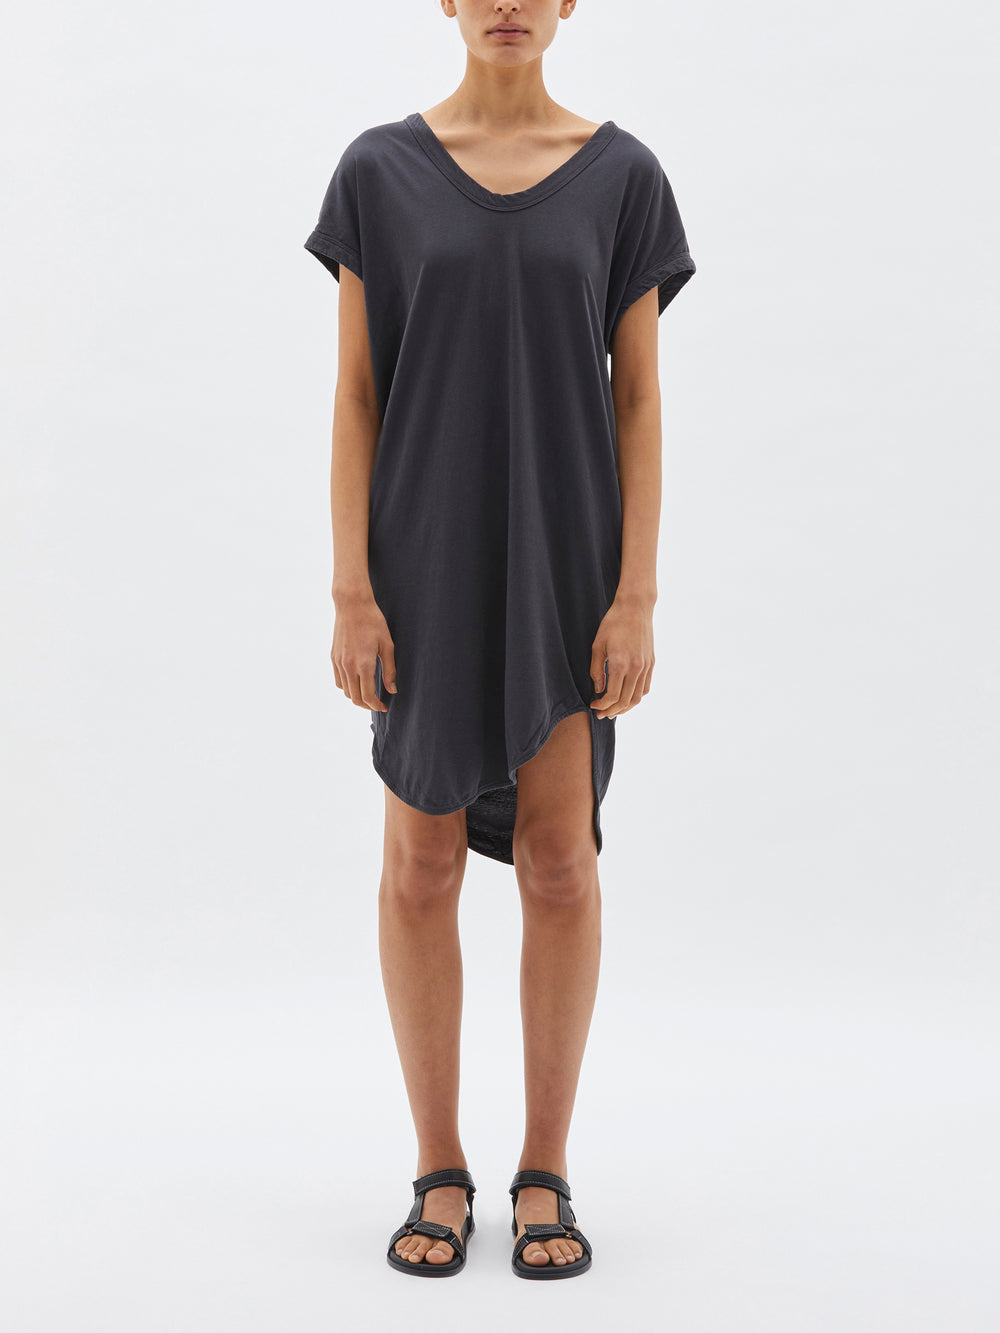 boxy t.shirt dress with tail ll